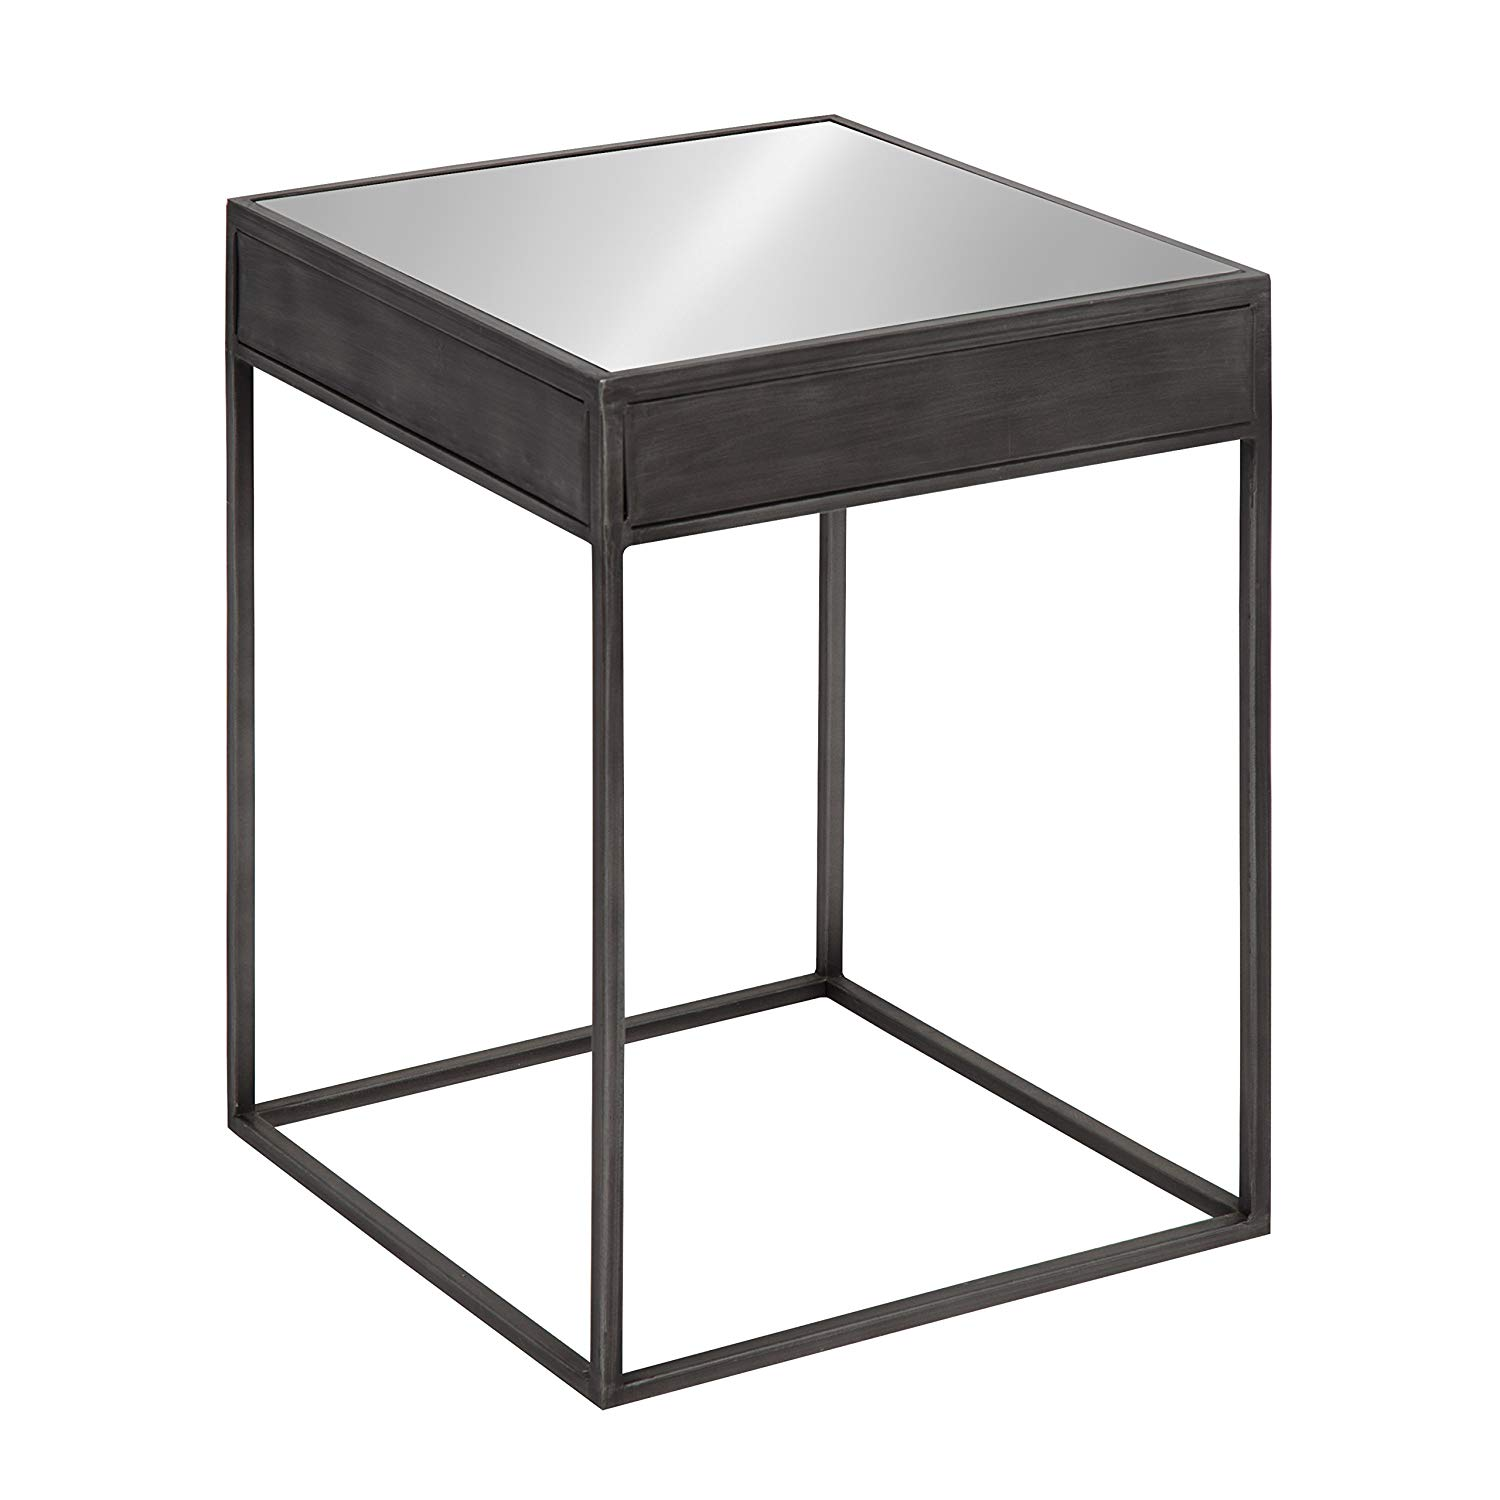 tag archived side table designs for living room agreeable glass round kmart marble industrial decor square outdoor design drawing bedside black concrete lamp scandi target lamps